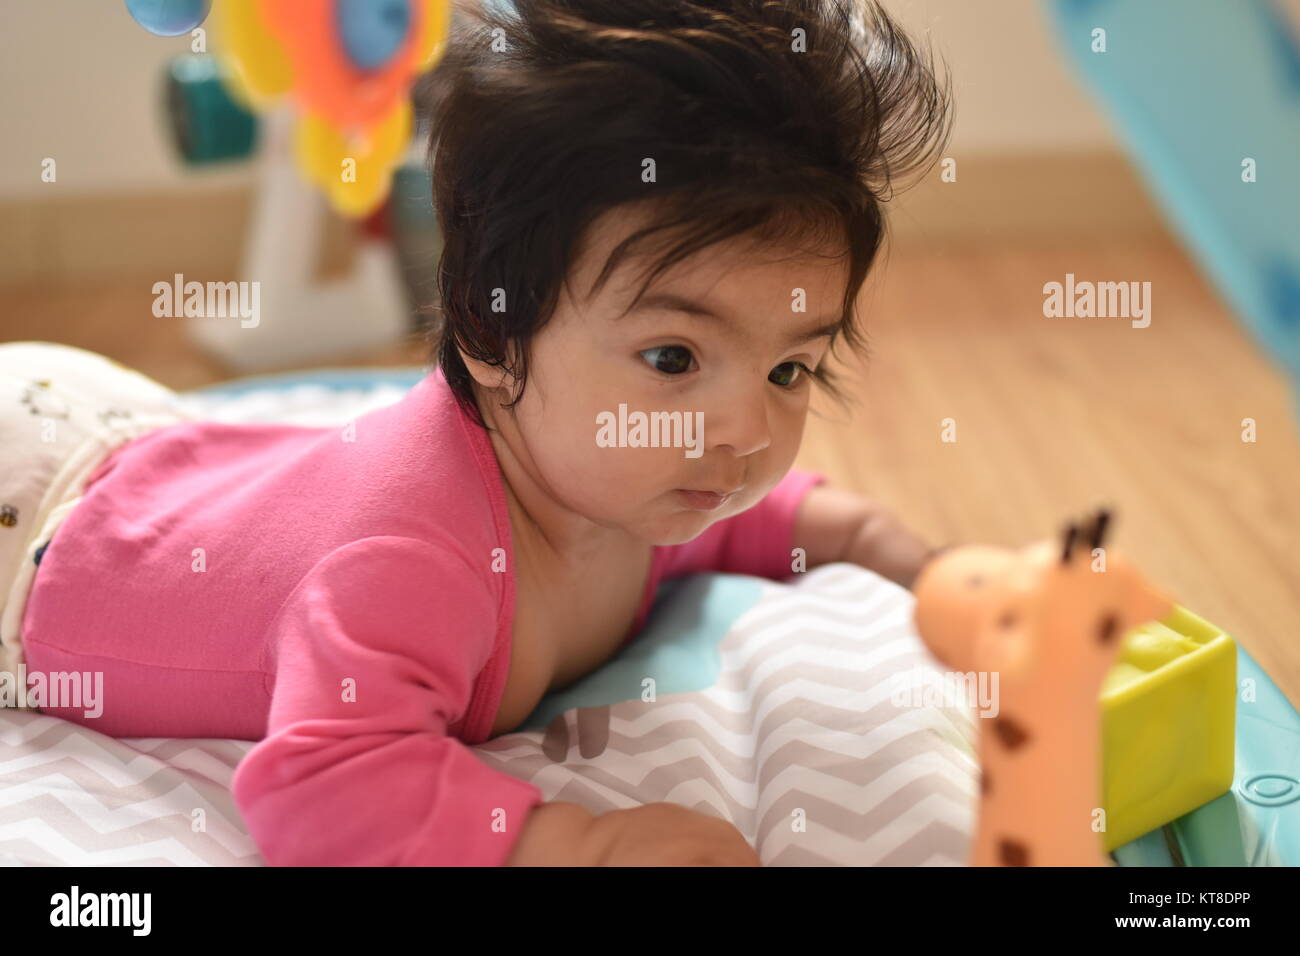 Crawling baby girl stares attentively examining her toys - Stock Image